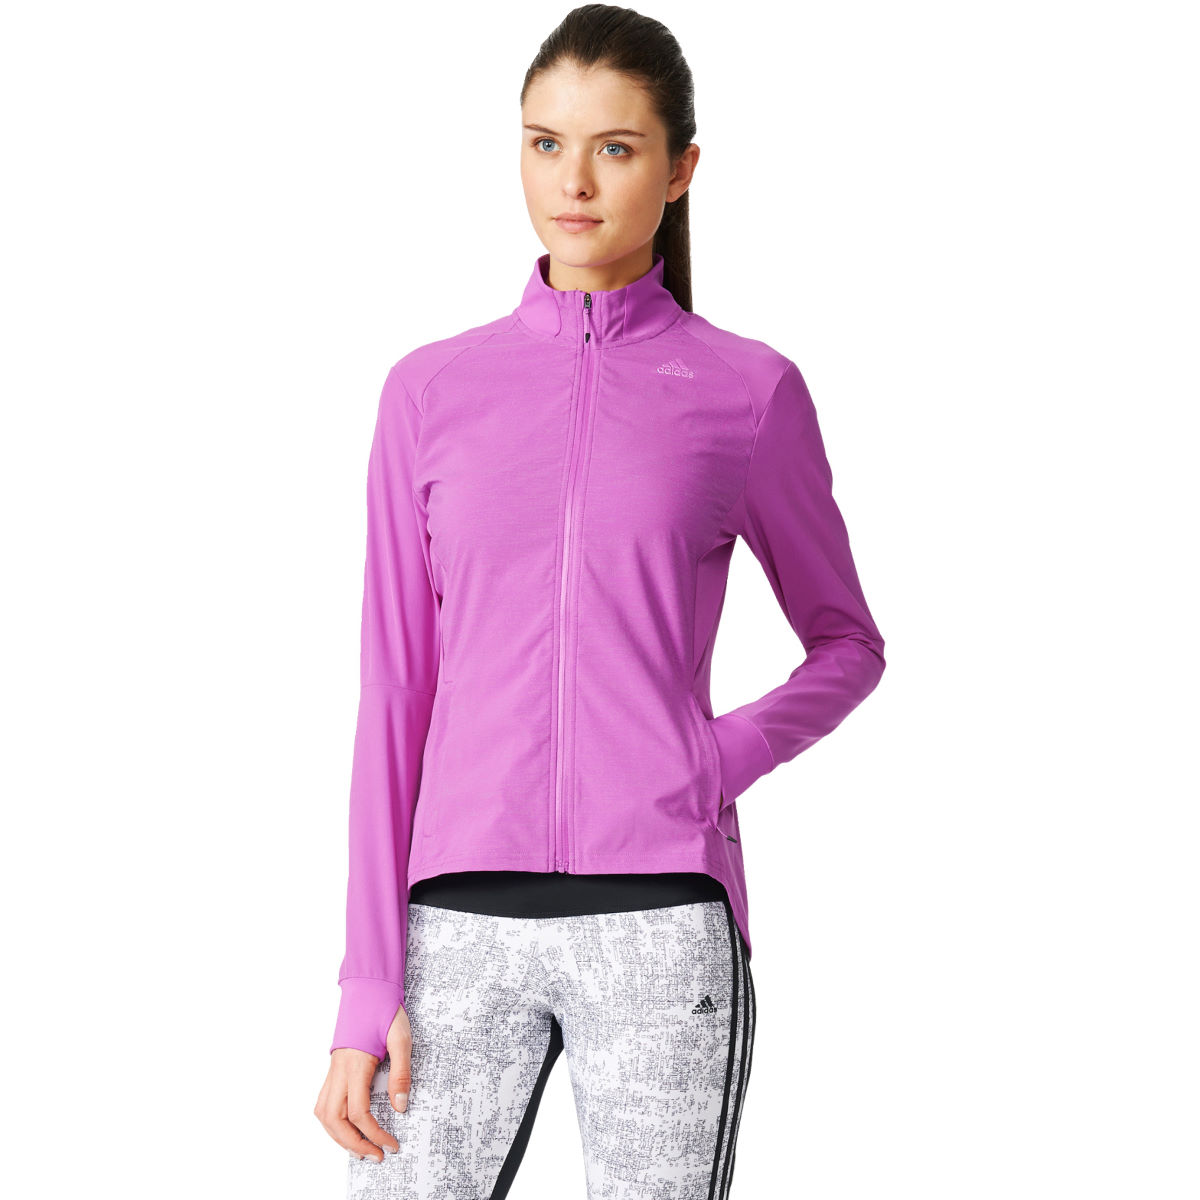 Adidas Womens Supernova Storm Jacket (AW16)   Running Windproof Jackets